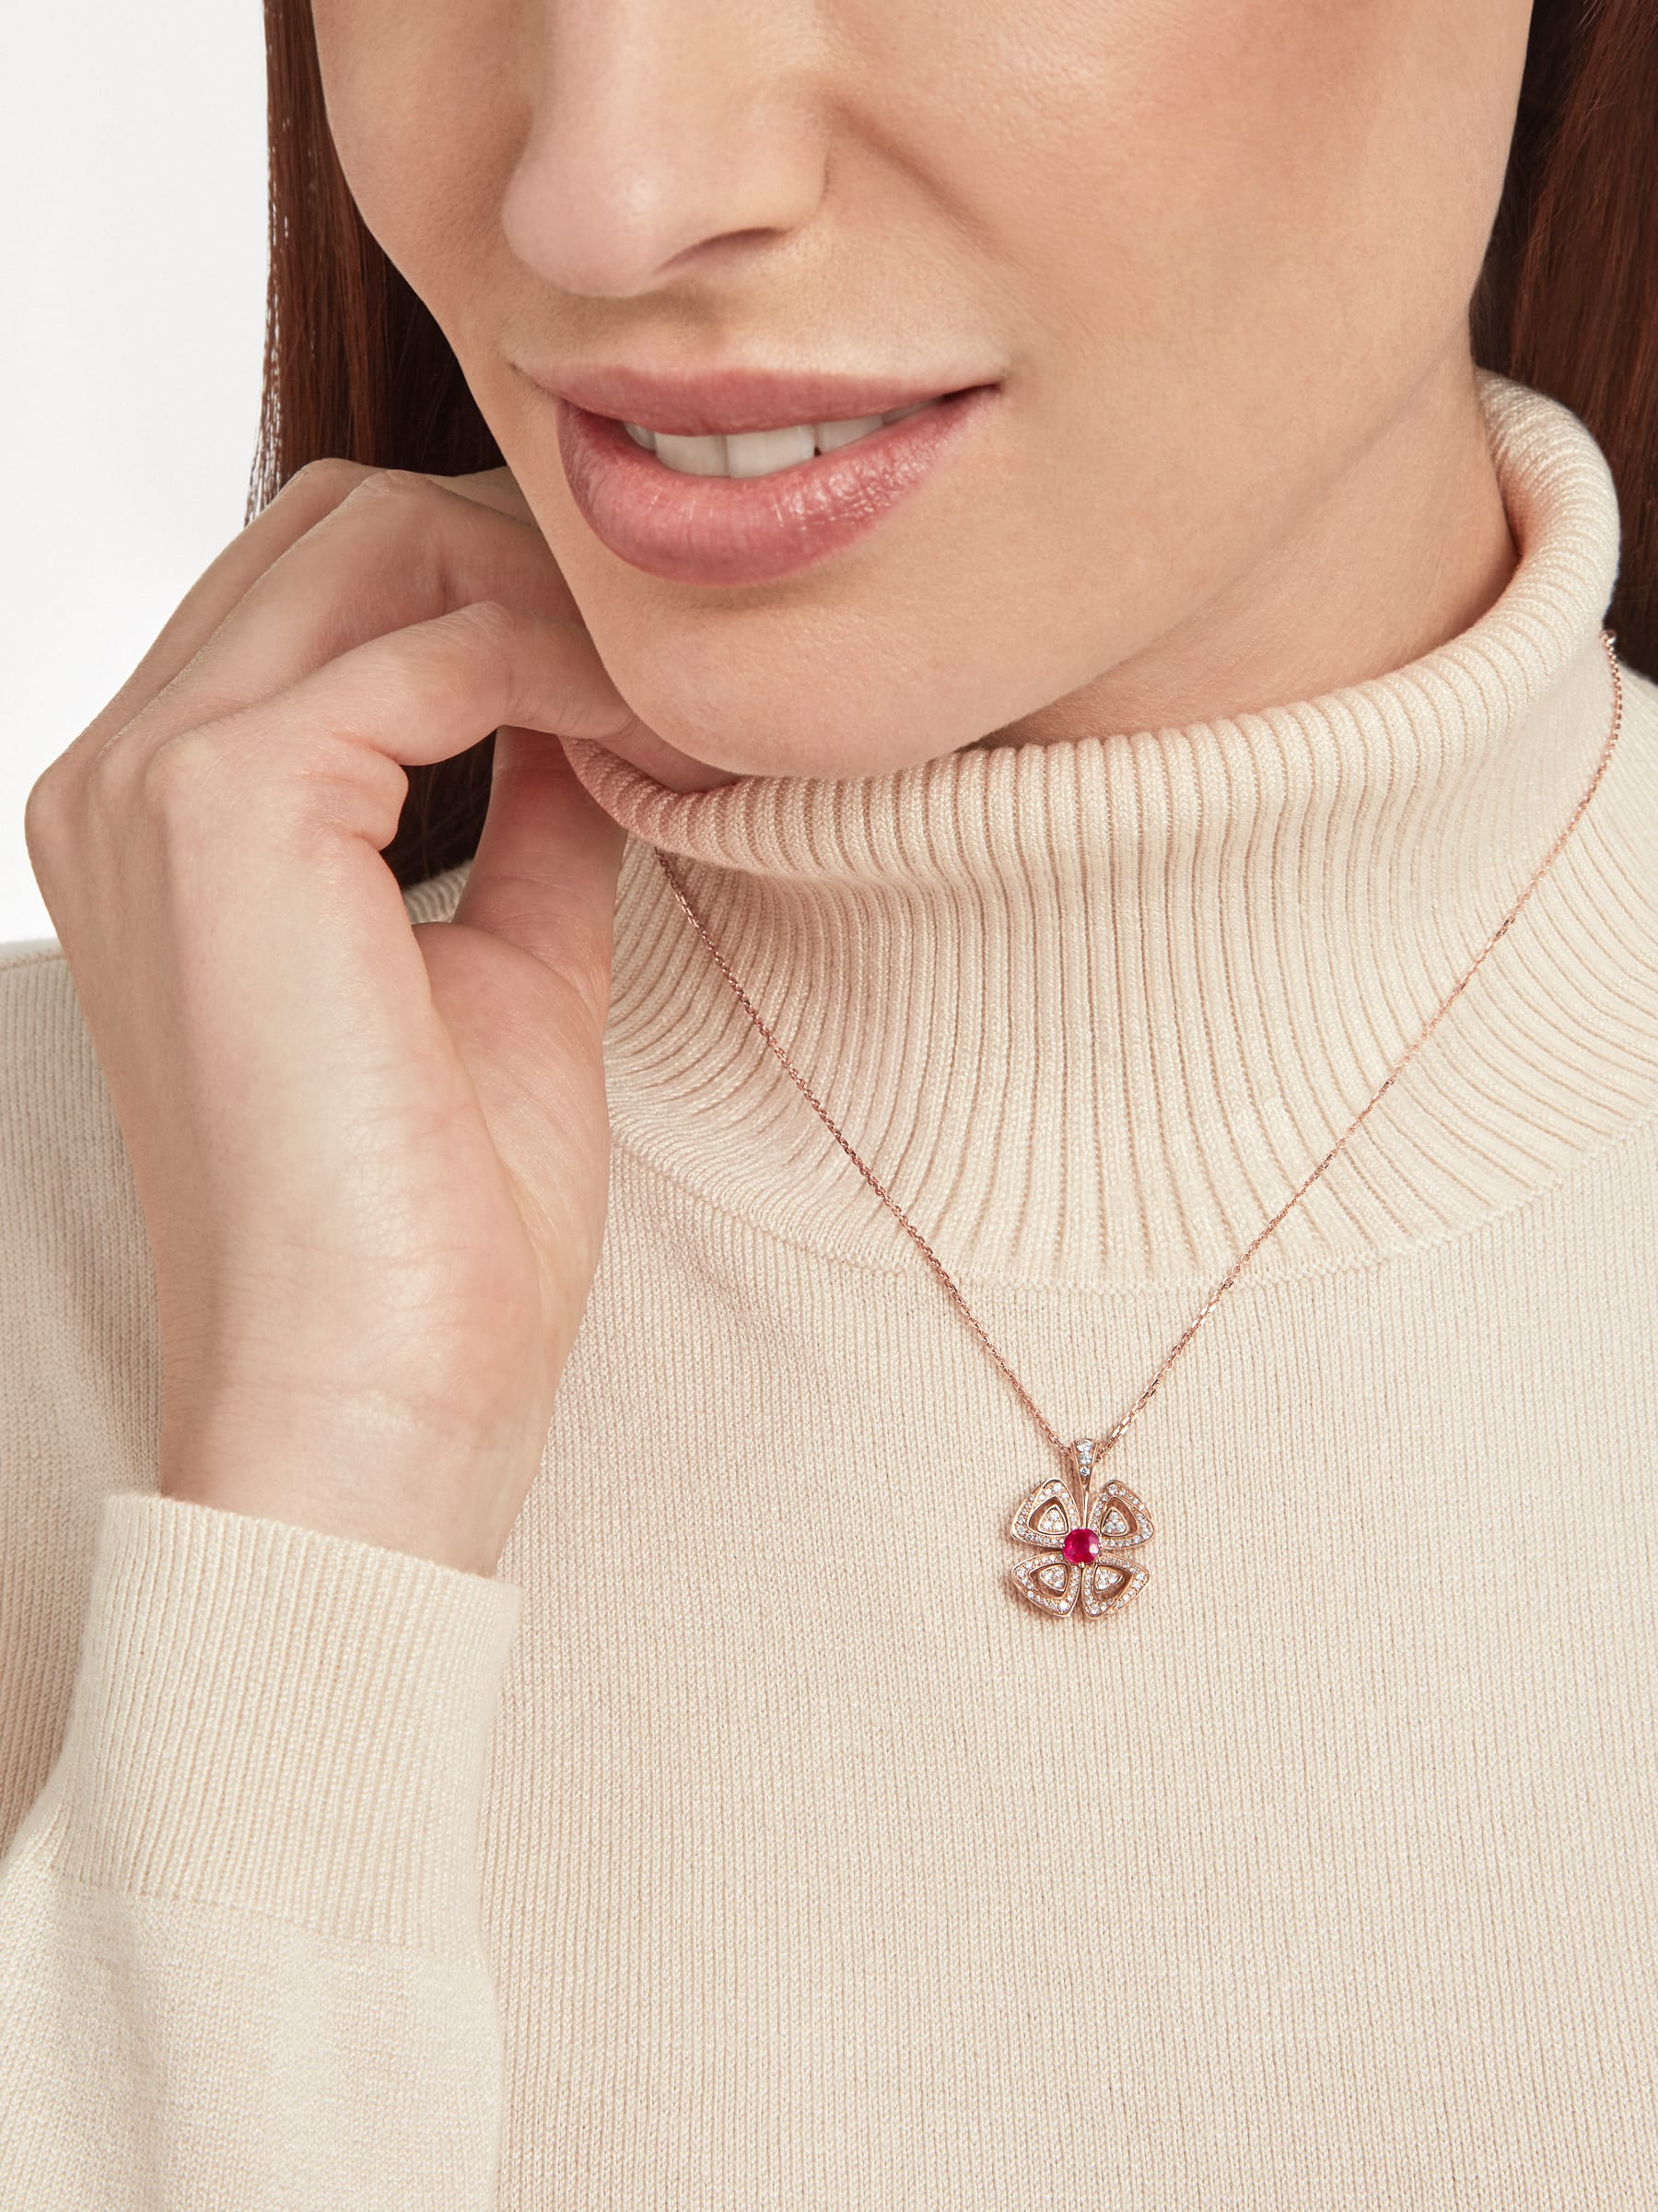 Fiorever 18 kt rose gold pendant necklace set with a central brilliant-cut ruby (0.35 ct) and pavé diamonds (0.31 ct) 358428 image 5